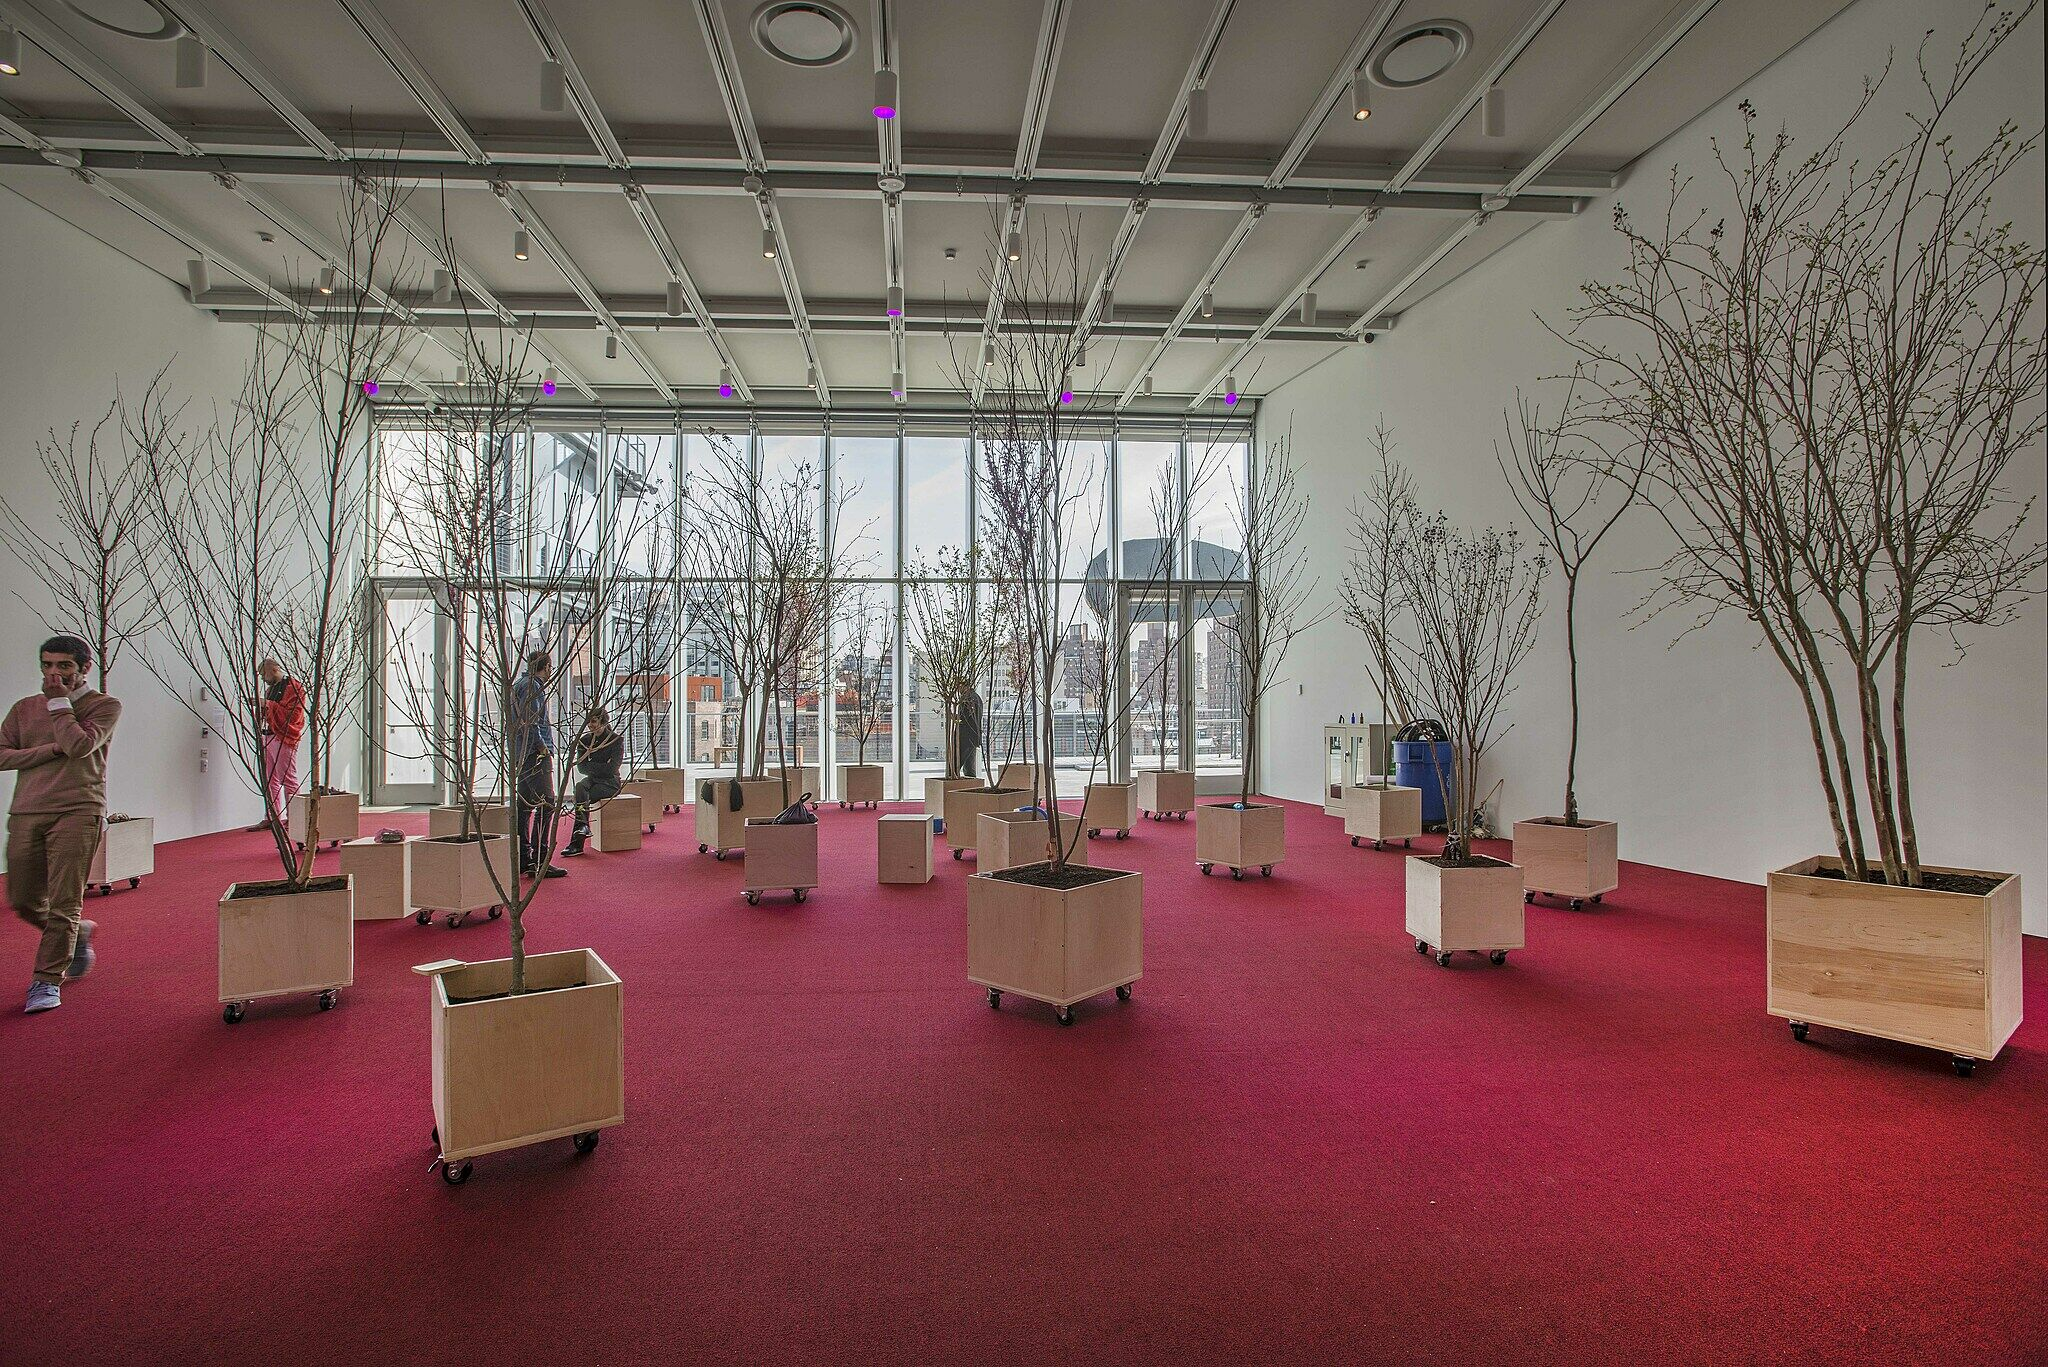 Red-carpeted room with many potted trees